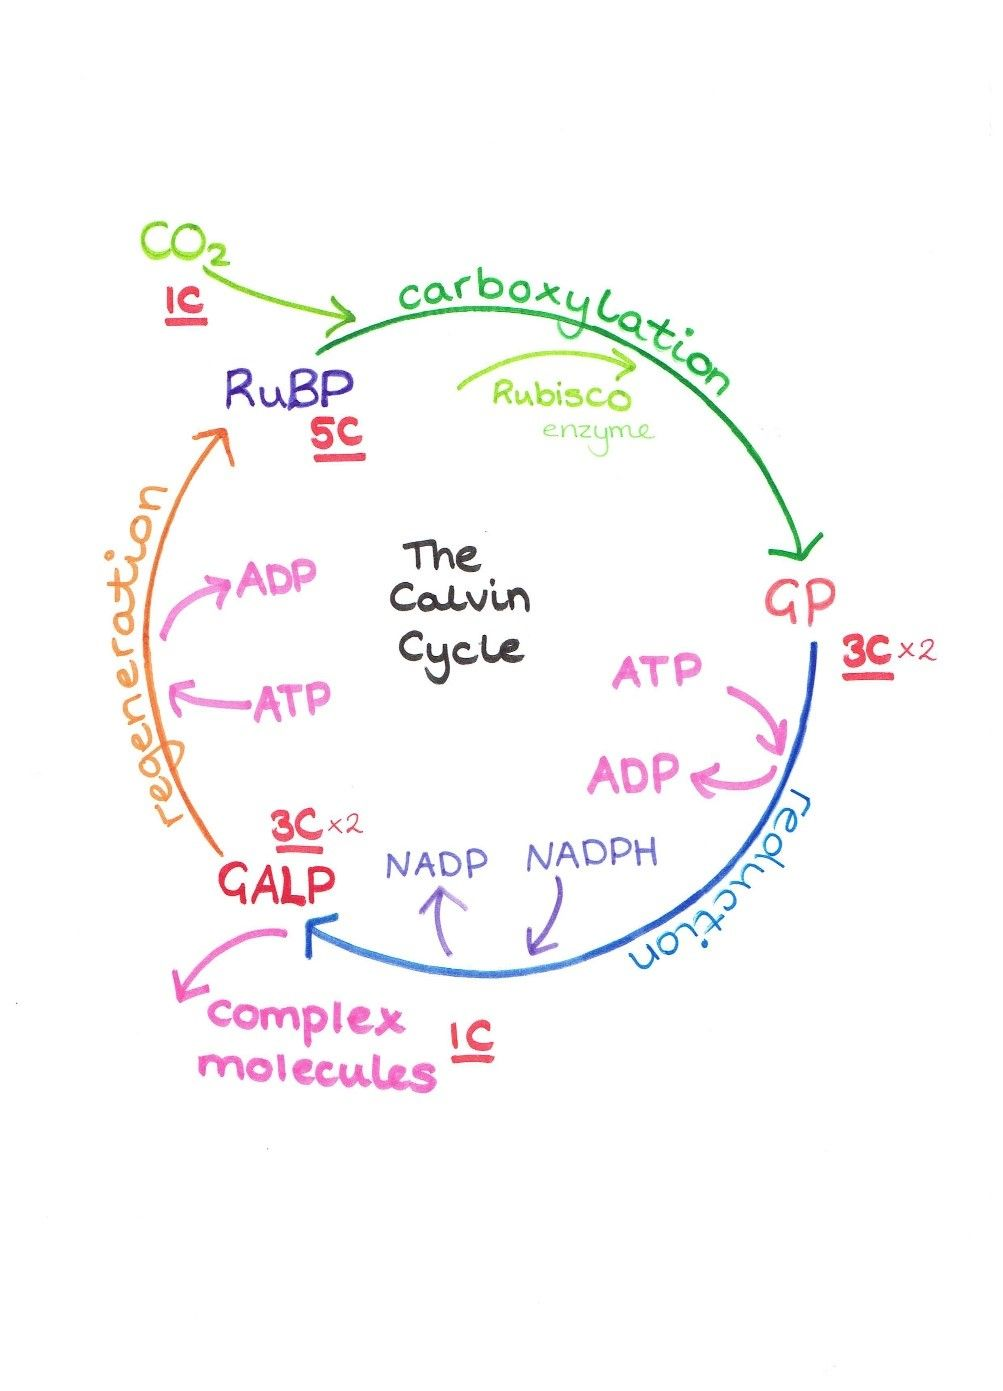 enzymatic cycle diagram simple wiring diagram new enzymatic cycle diagram [ 1003 x 1391 Pixel ]